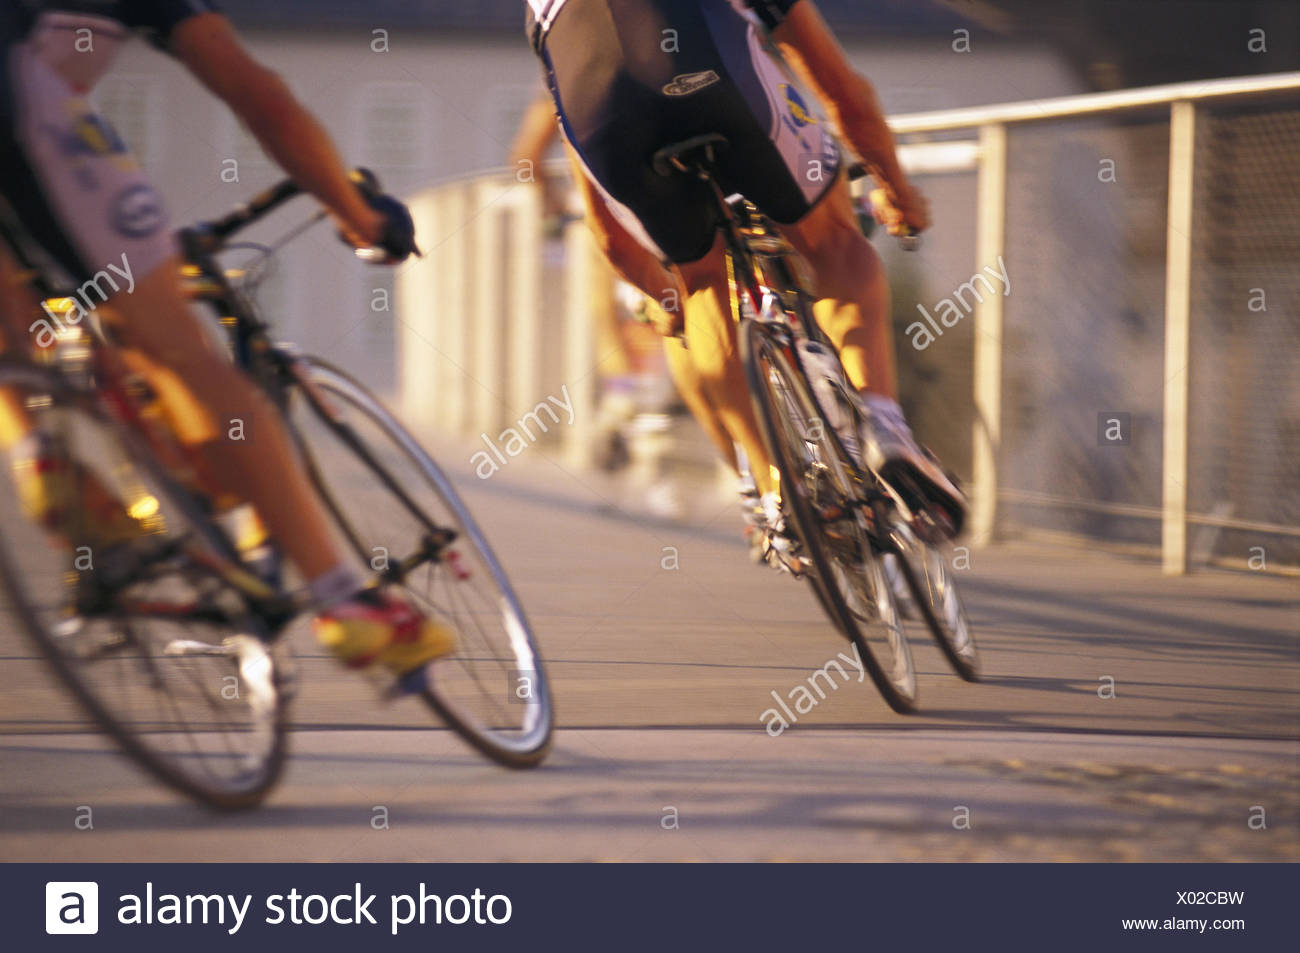 Cycle race, cyclist, bend position, curled, blur, no model